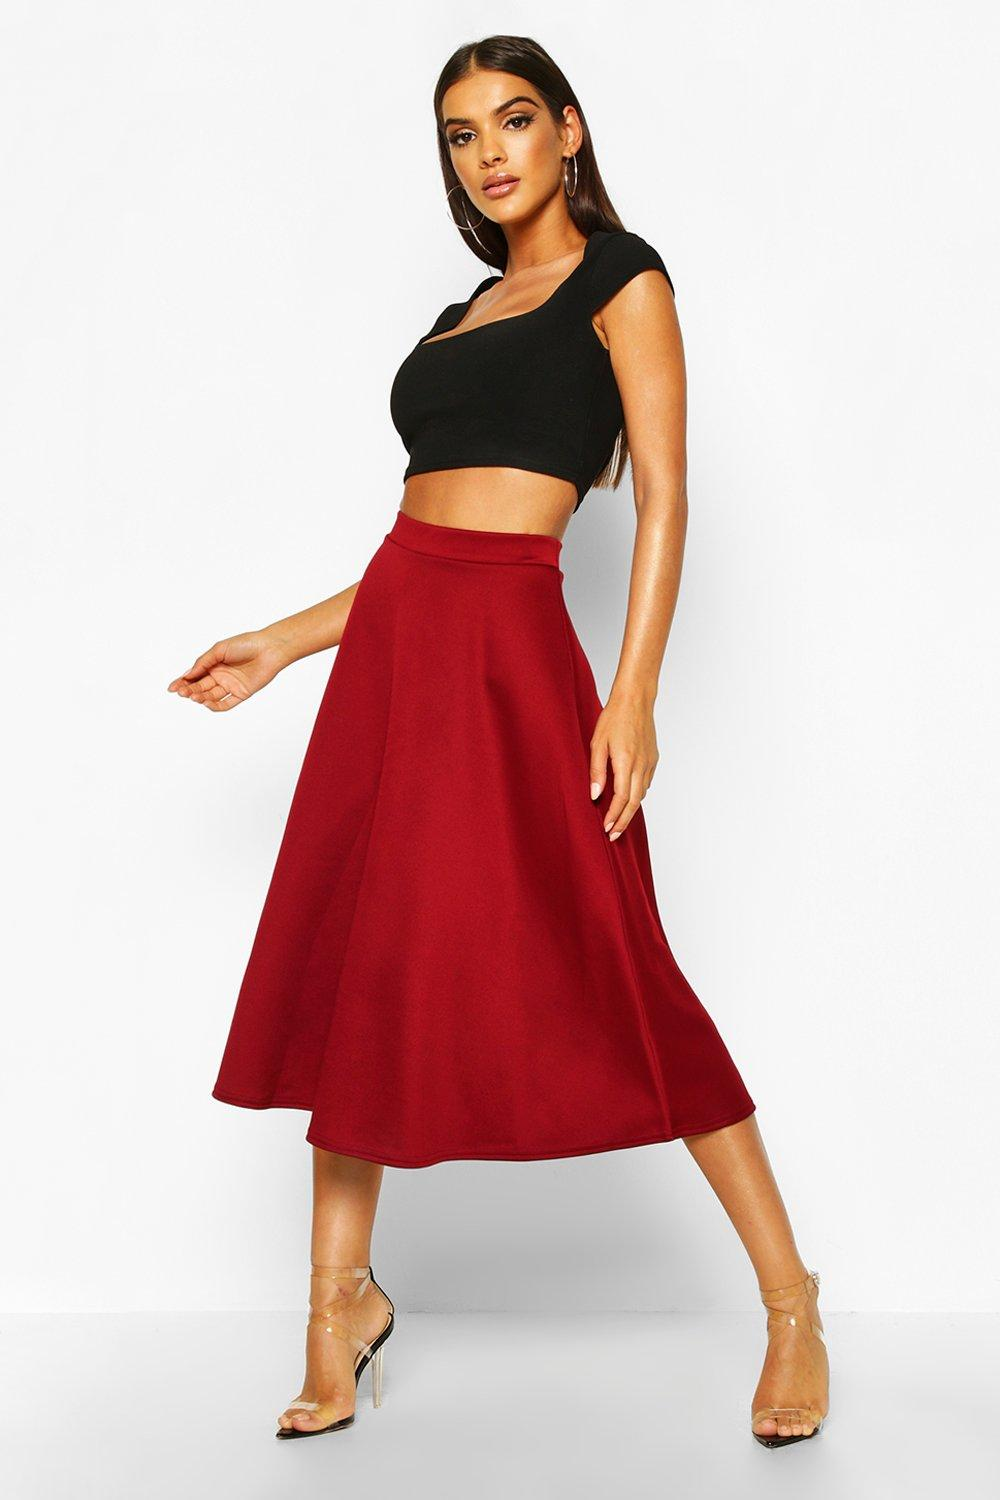 Retro Skirts: Vintage, Pencil, Circle, & Plus Sizes Basic Plain Full Circle Midi Skirt  AT vintagedancer.com